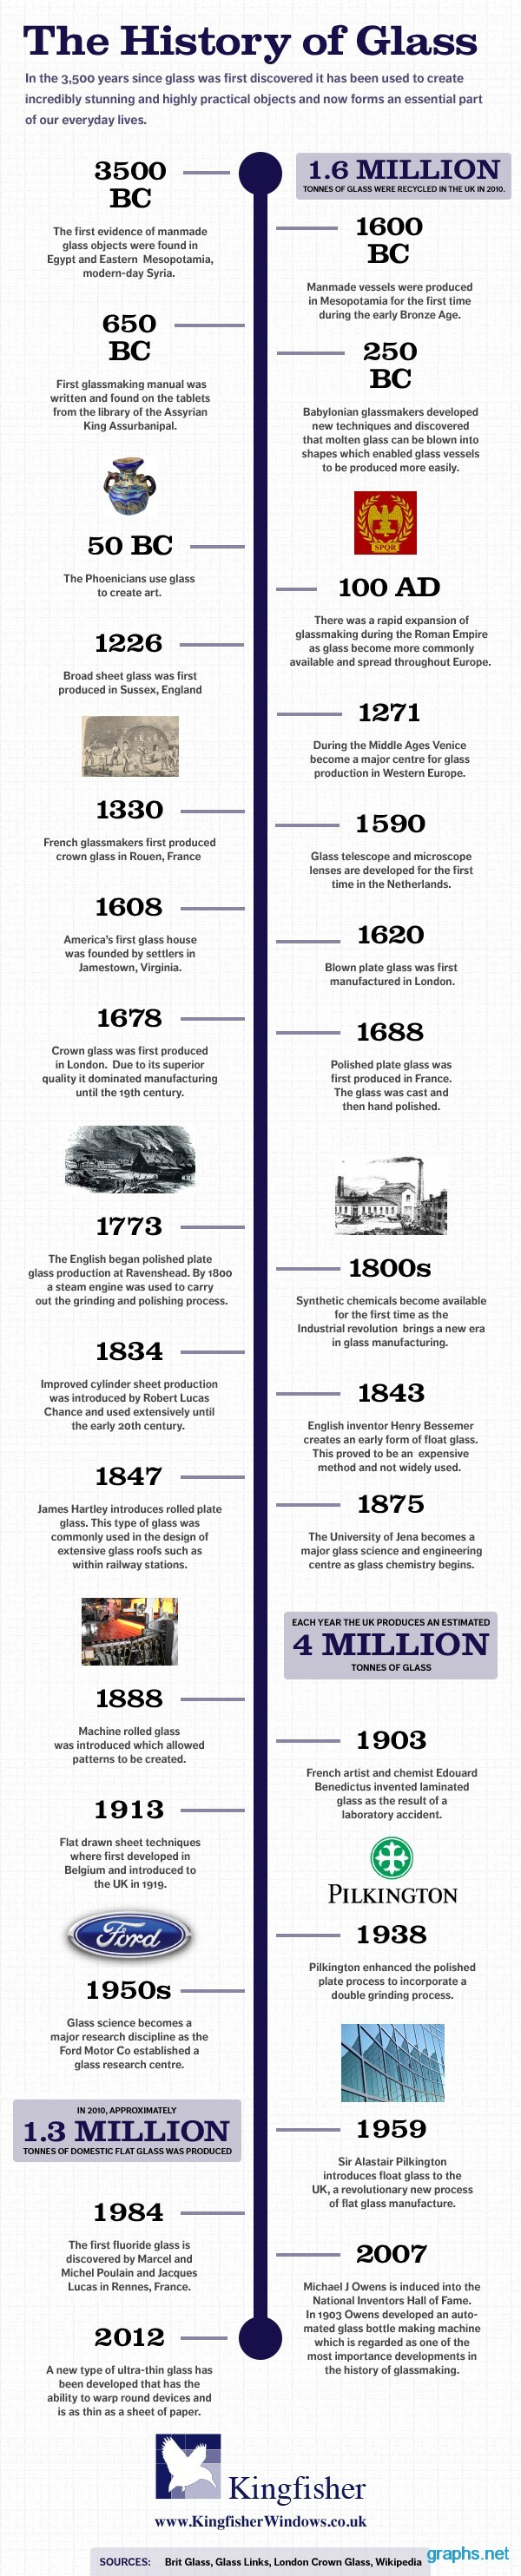 Glass and its History